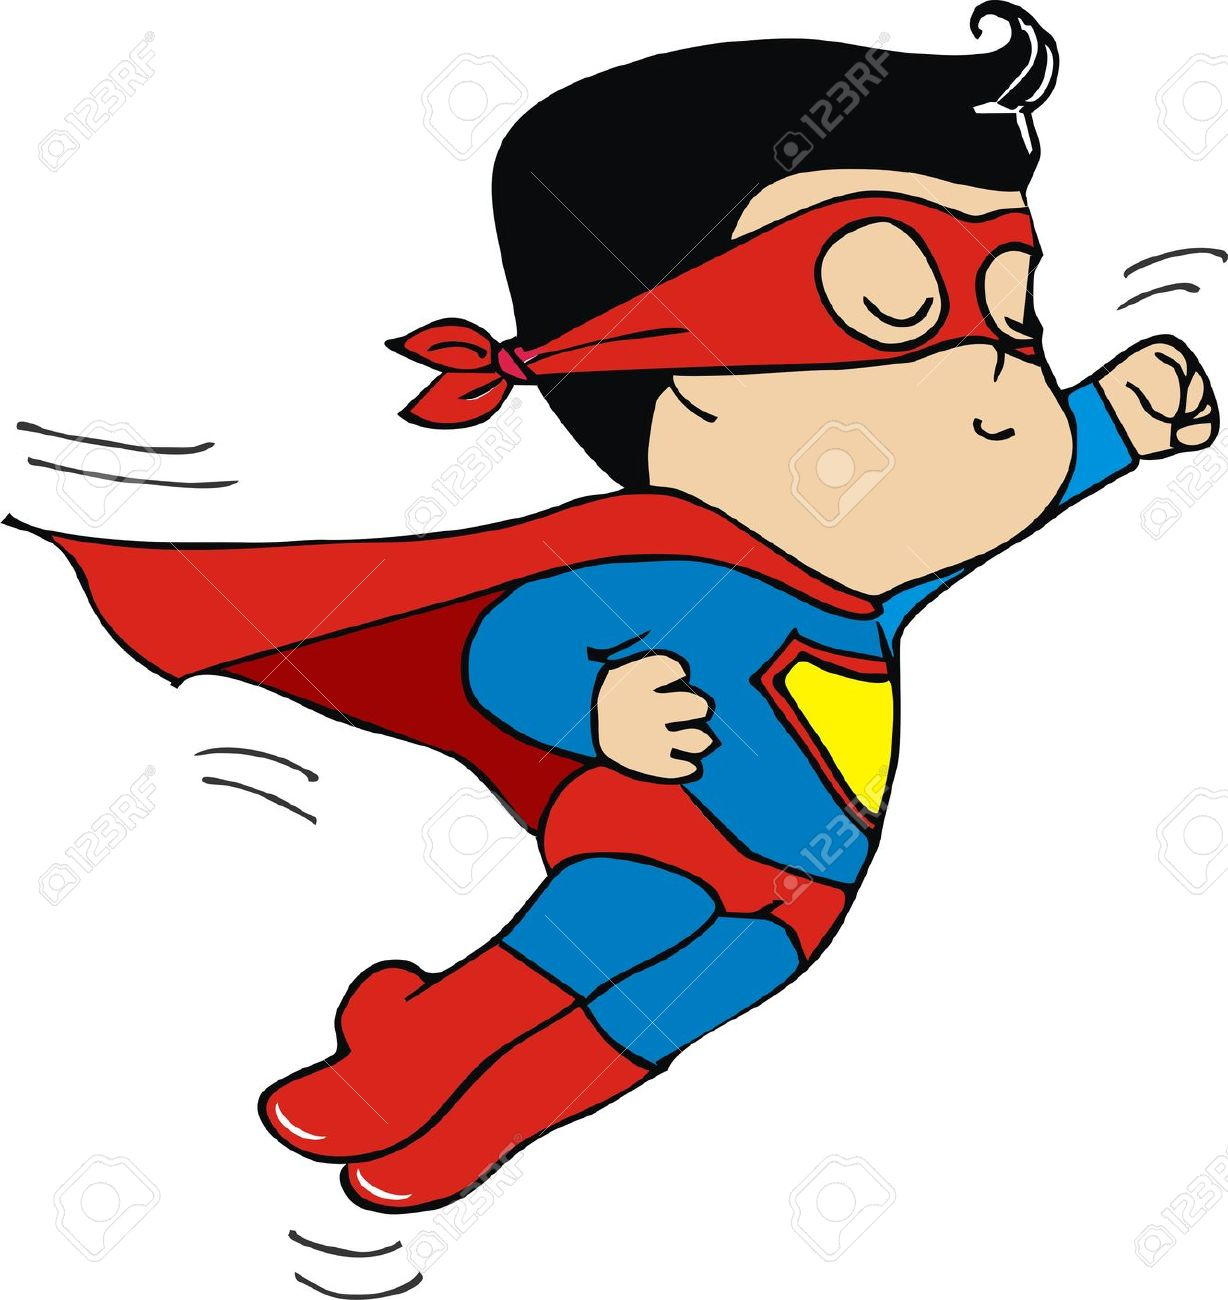 Baby superman clipart.